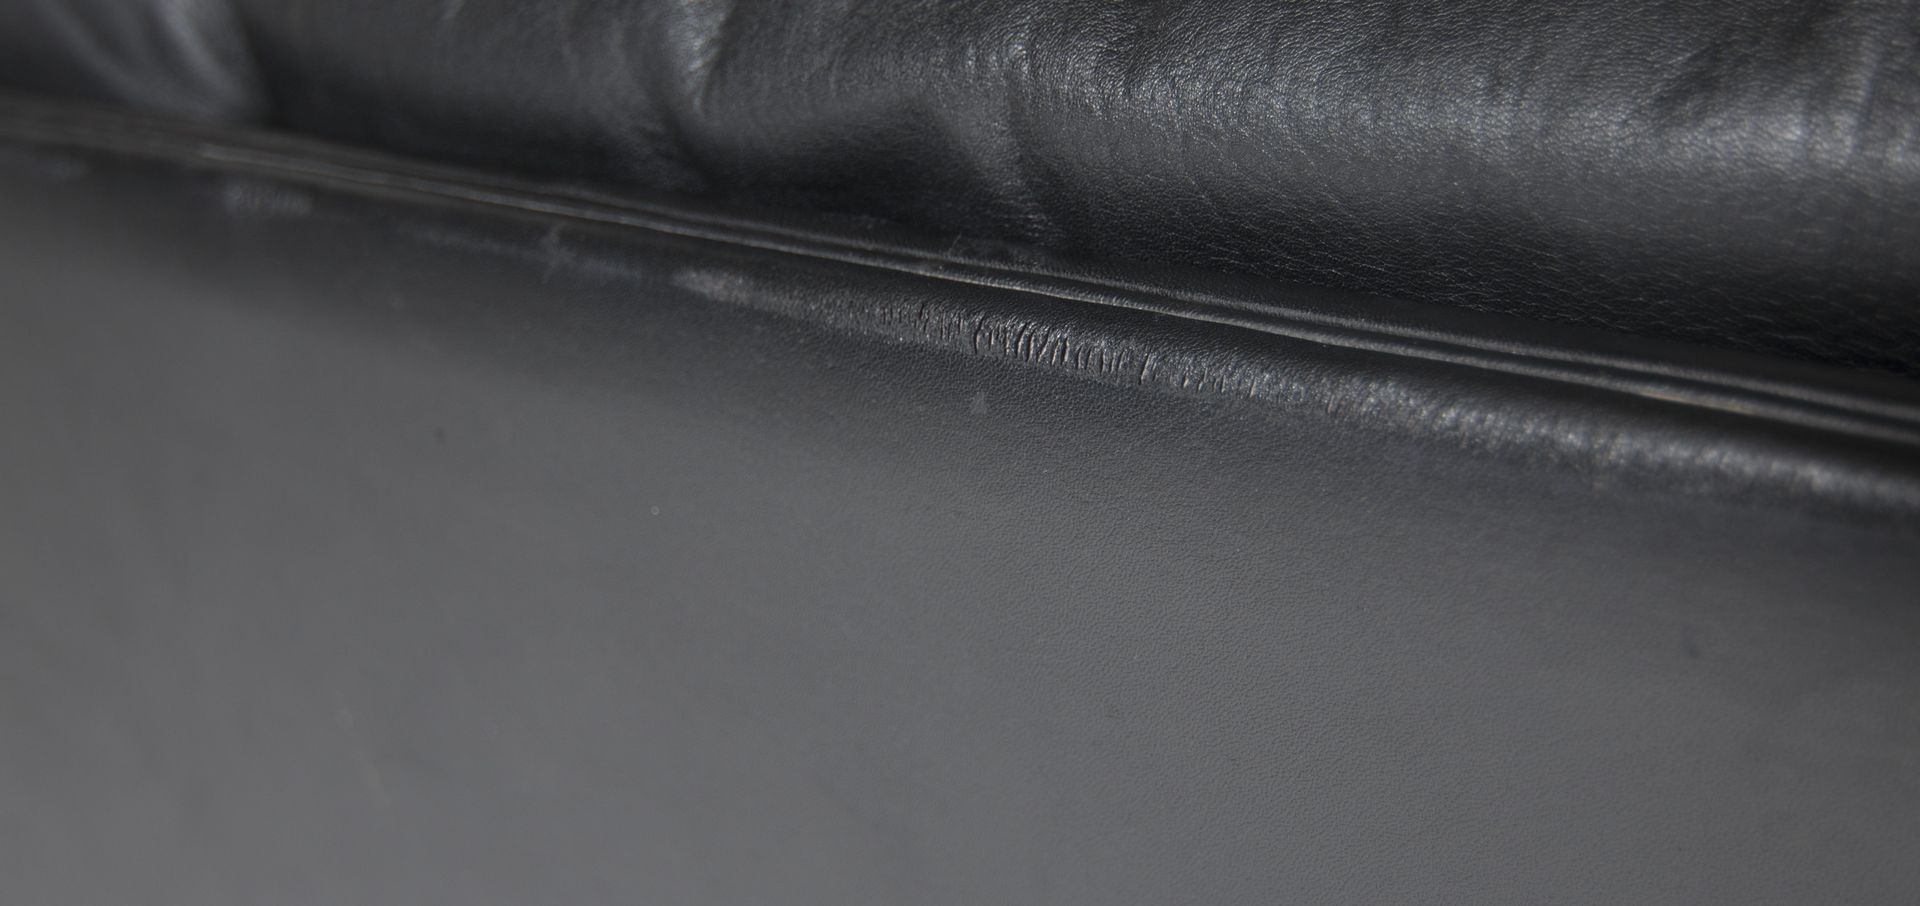 Black leather chair texture - Previous